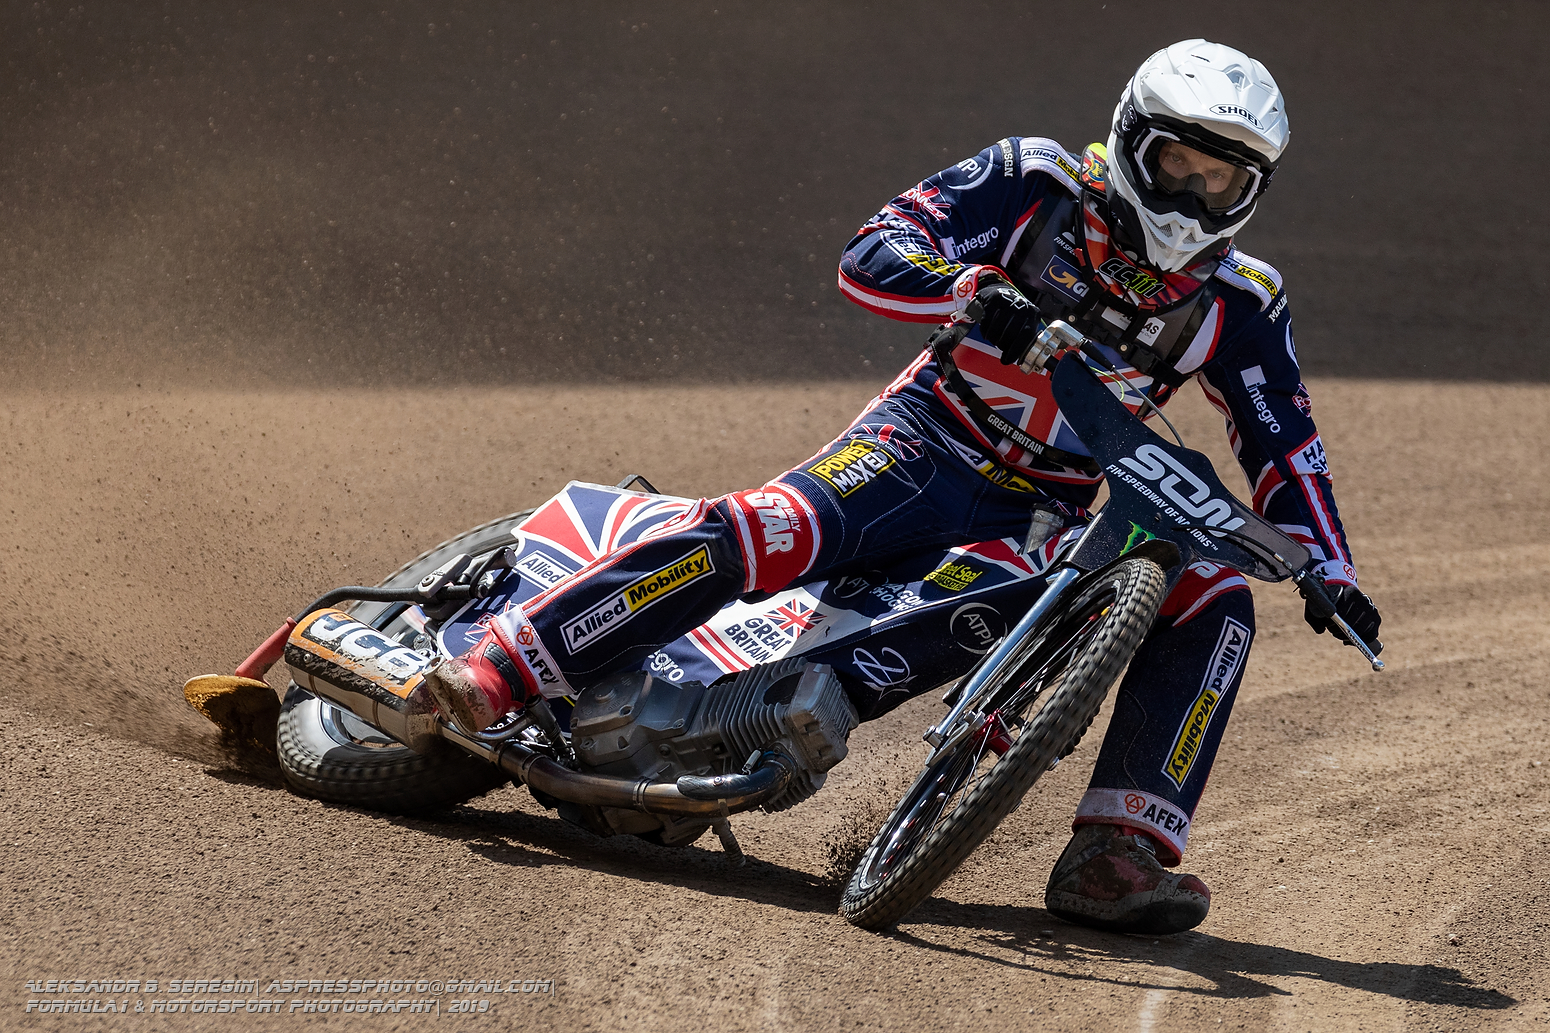 65.2019.Speedway.of.Nations.Russia.Togliatti.Review.Day.1.ASppaImages.COM by .